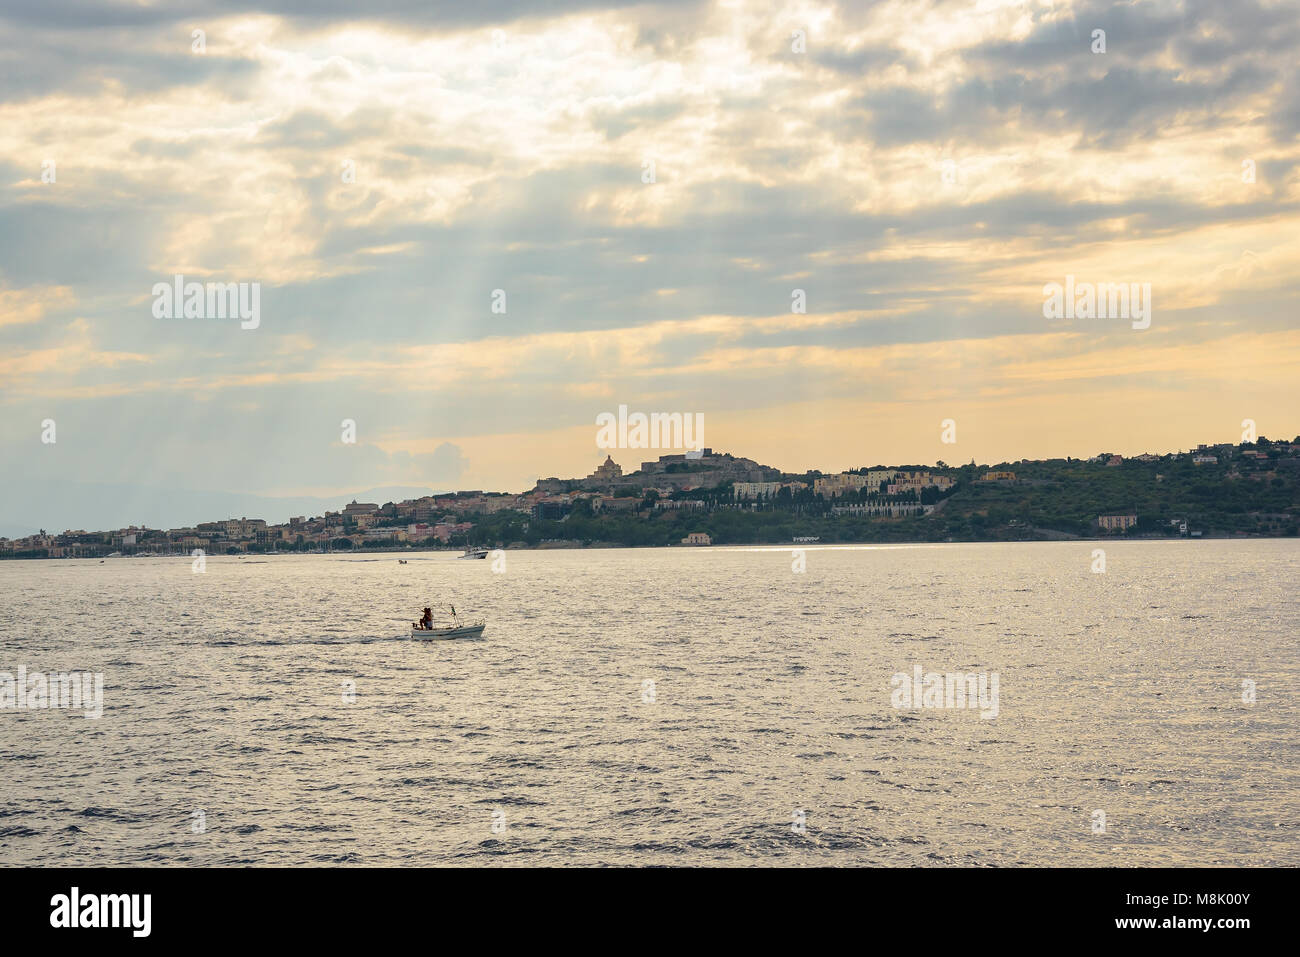 View of Milazzo town from the sea at sunset, Sicily, Italy Stock Photo